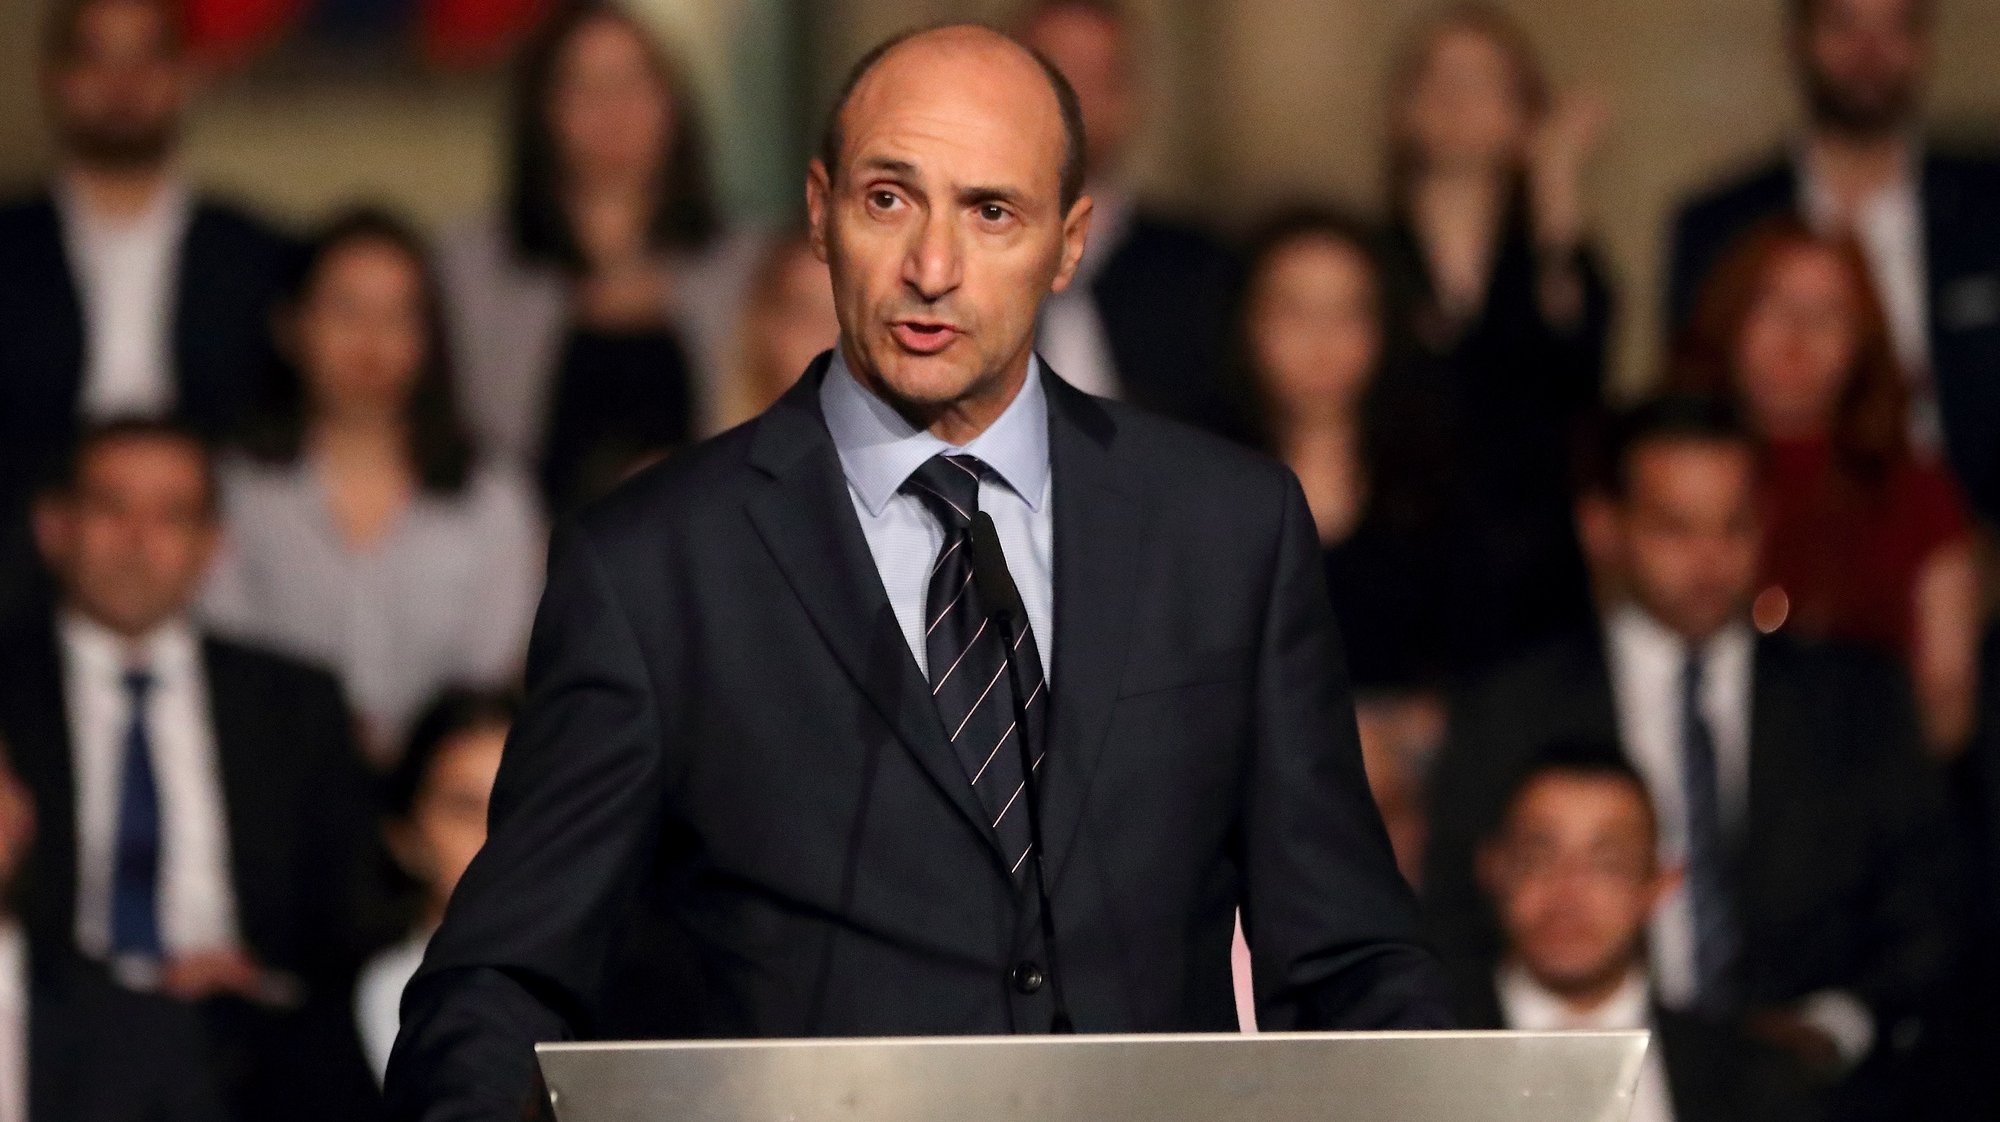 epa08049227 Malta's Deputy Prime Minister and Minister for Health, Dr. Chris Fearne speaks during a government event in Castille Place, Valletta, Malta, on 22 October, 2018 (issued 06 December 2019). Chris Fearne officially announced on 06 December 2019 that he will contest the upcoming Labour leadership (Partit Laburista) election. According to local reports, Fearner is tipped to succeed Joseph Muscat as the next Prime Minister of Malta.  EPA/DOMENIC AQUILINA